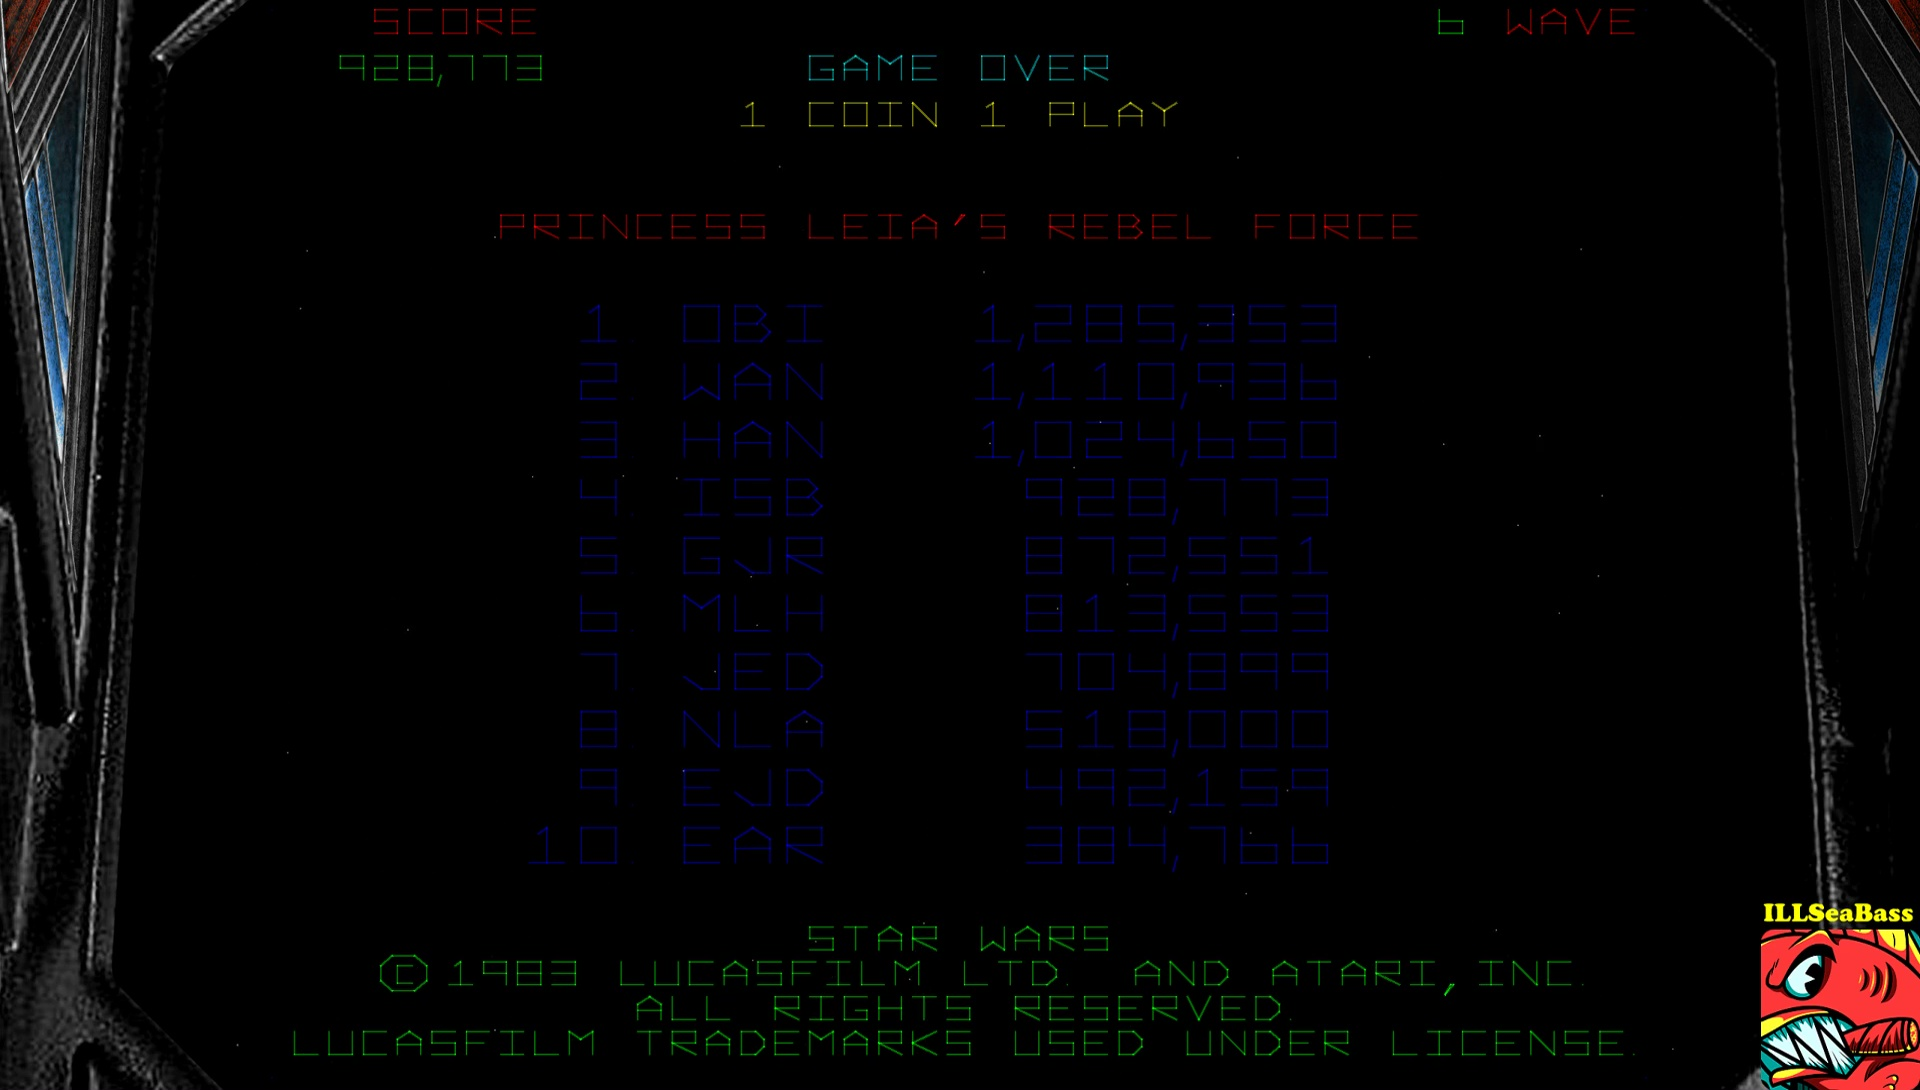 ILLSeaBass: Star Wars (Arcade Emulated / M.A.M.E.) 928,773 points on 2017-03-27 09:03:35